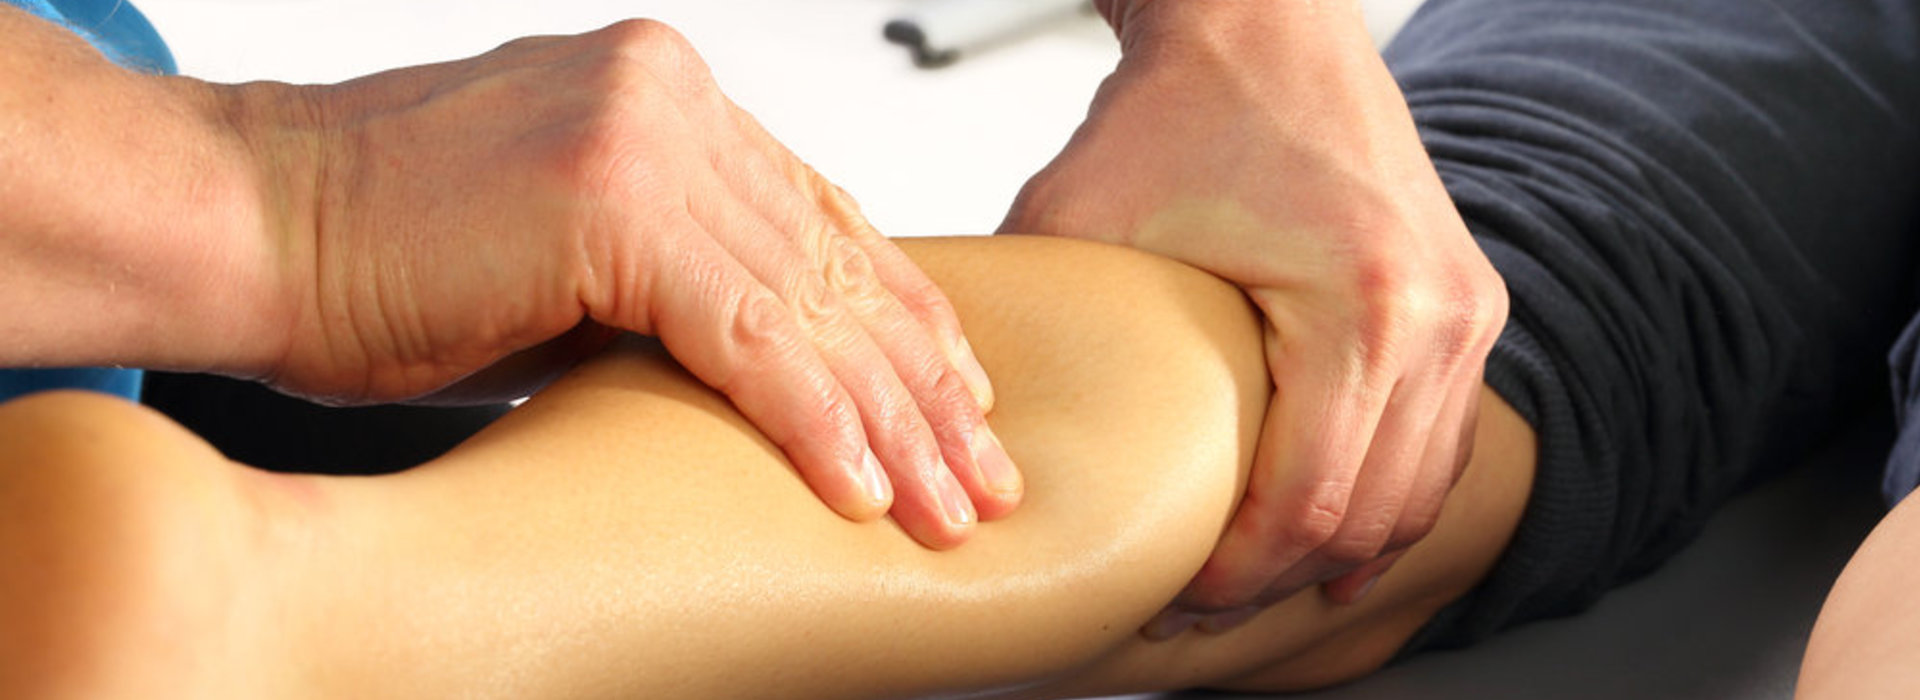 Get a 1hr Sports Massage for only £23! (normally £38)